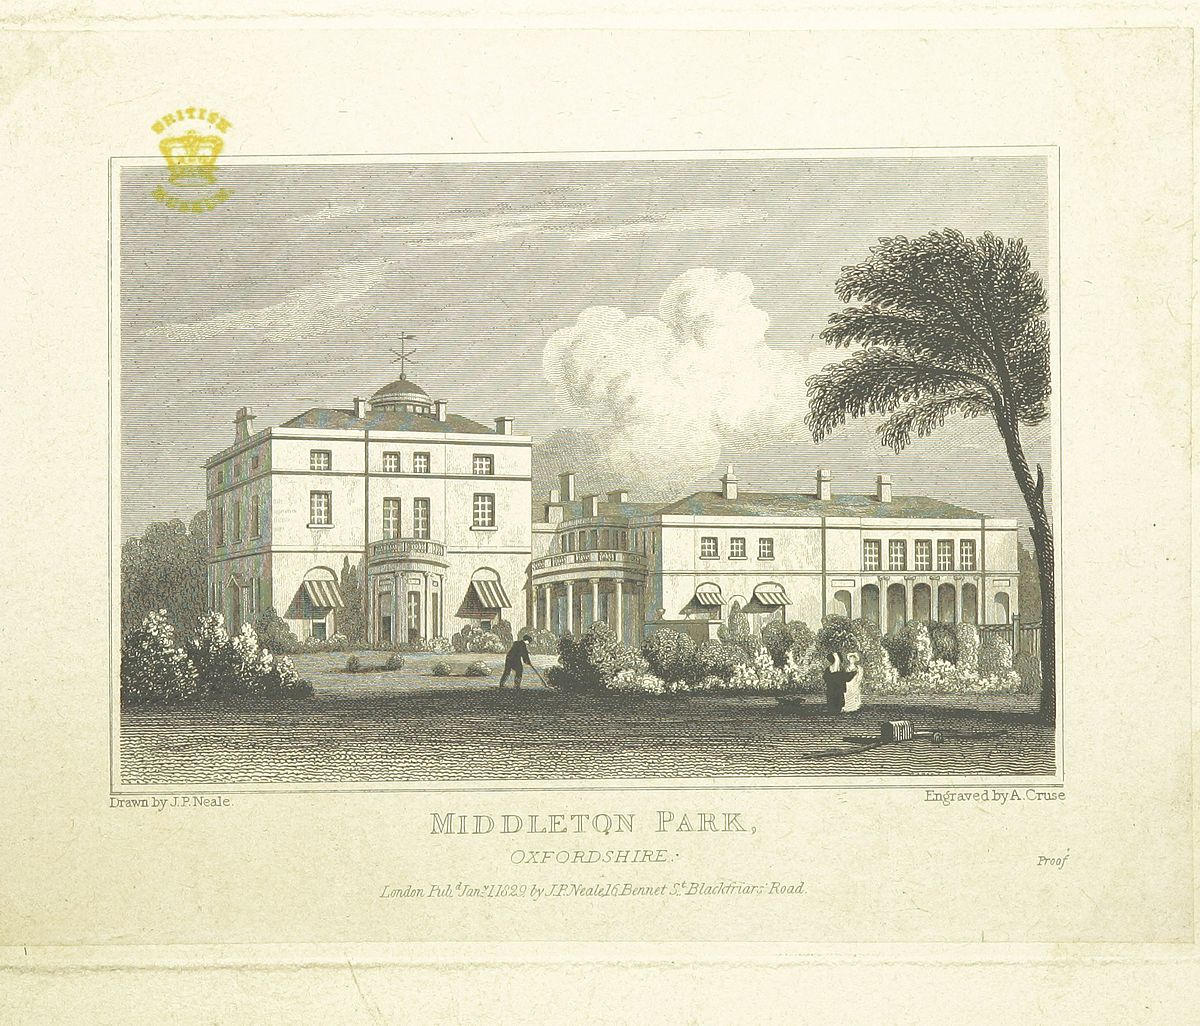 Middleton Park, Oxfordshire